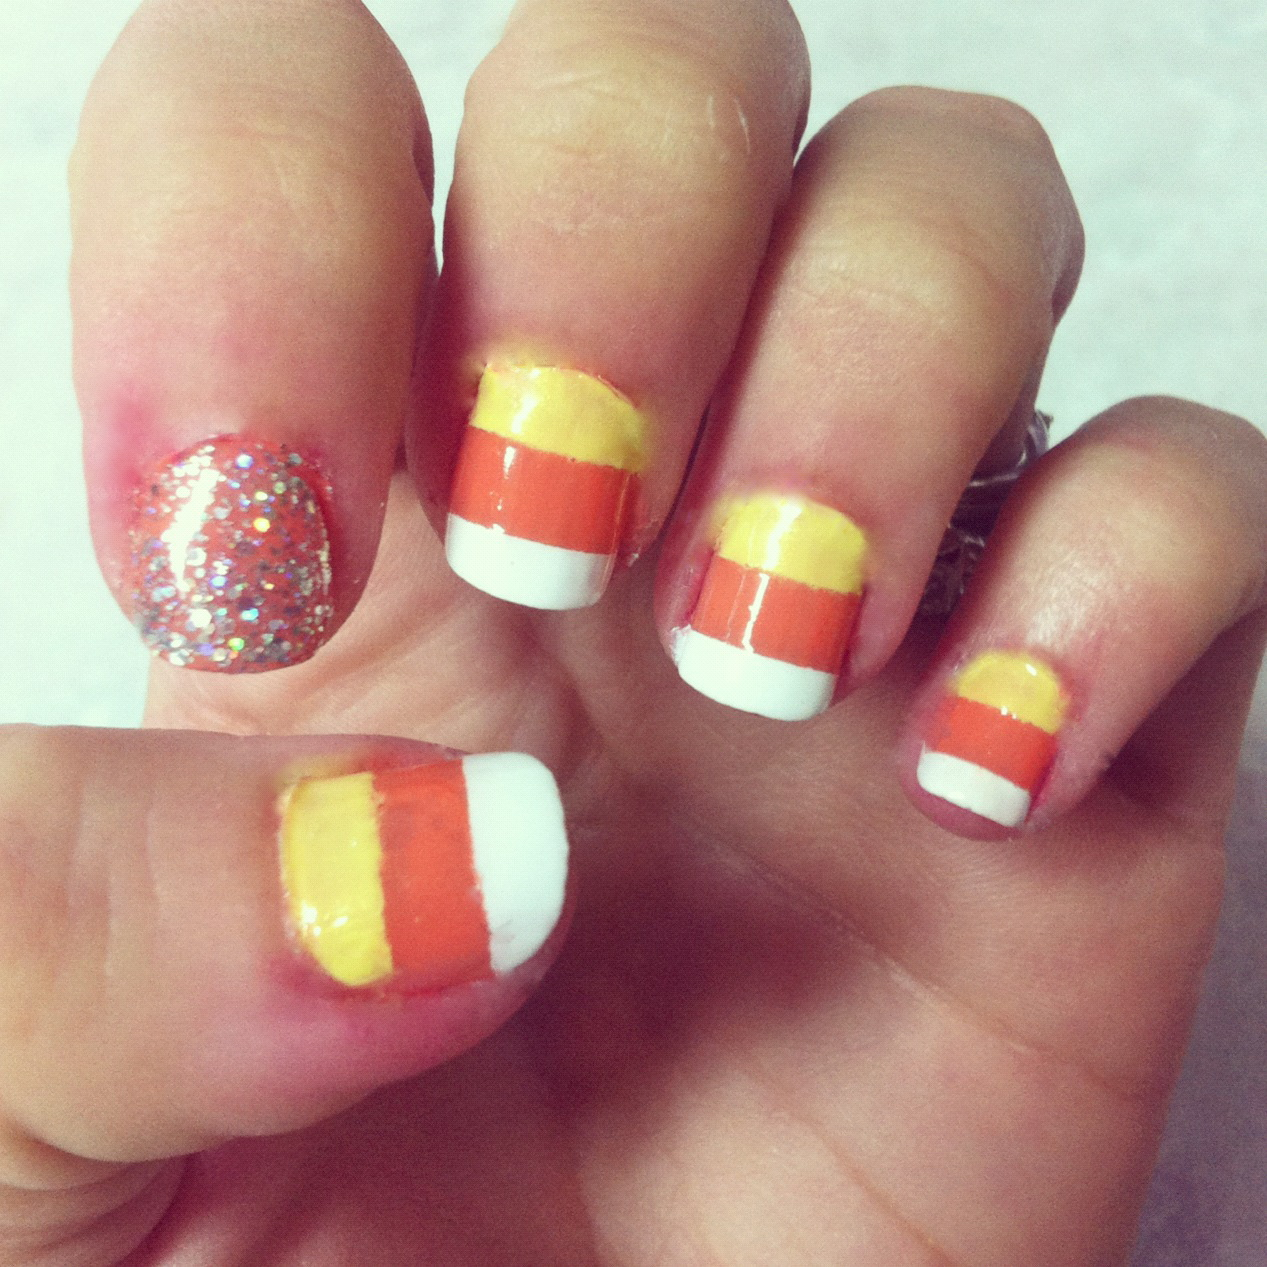 Halloween Nail Art Designs Without Nail Salon Prices: Tutorial: Candy Corn Nails